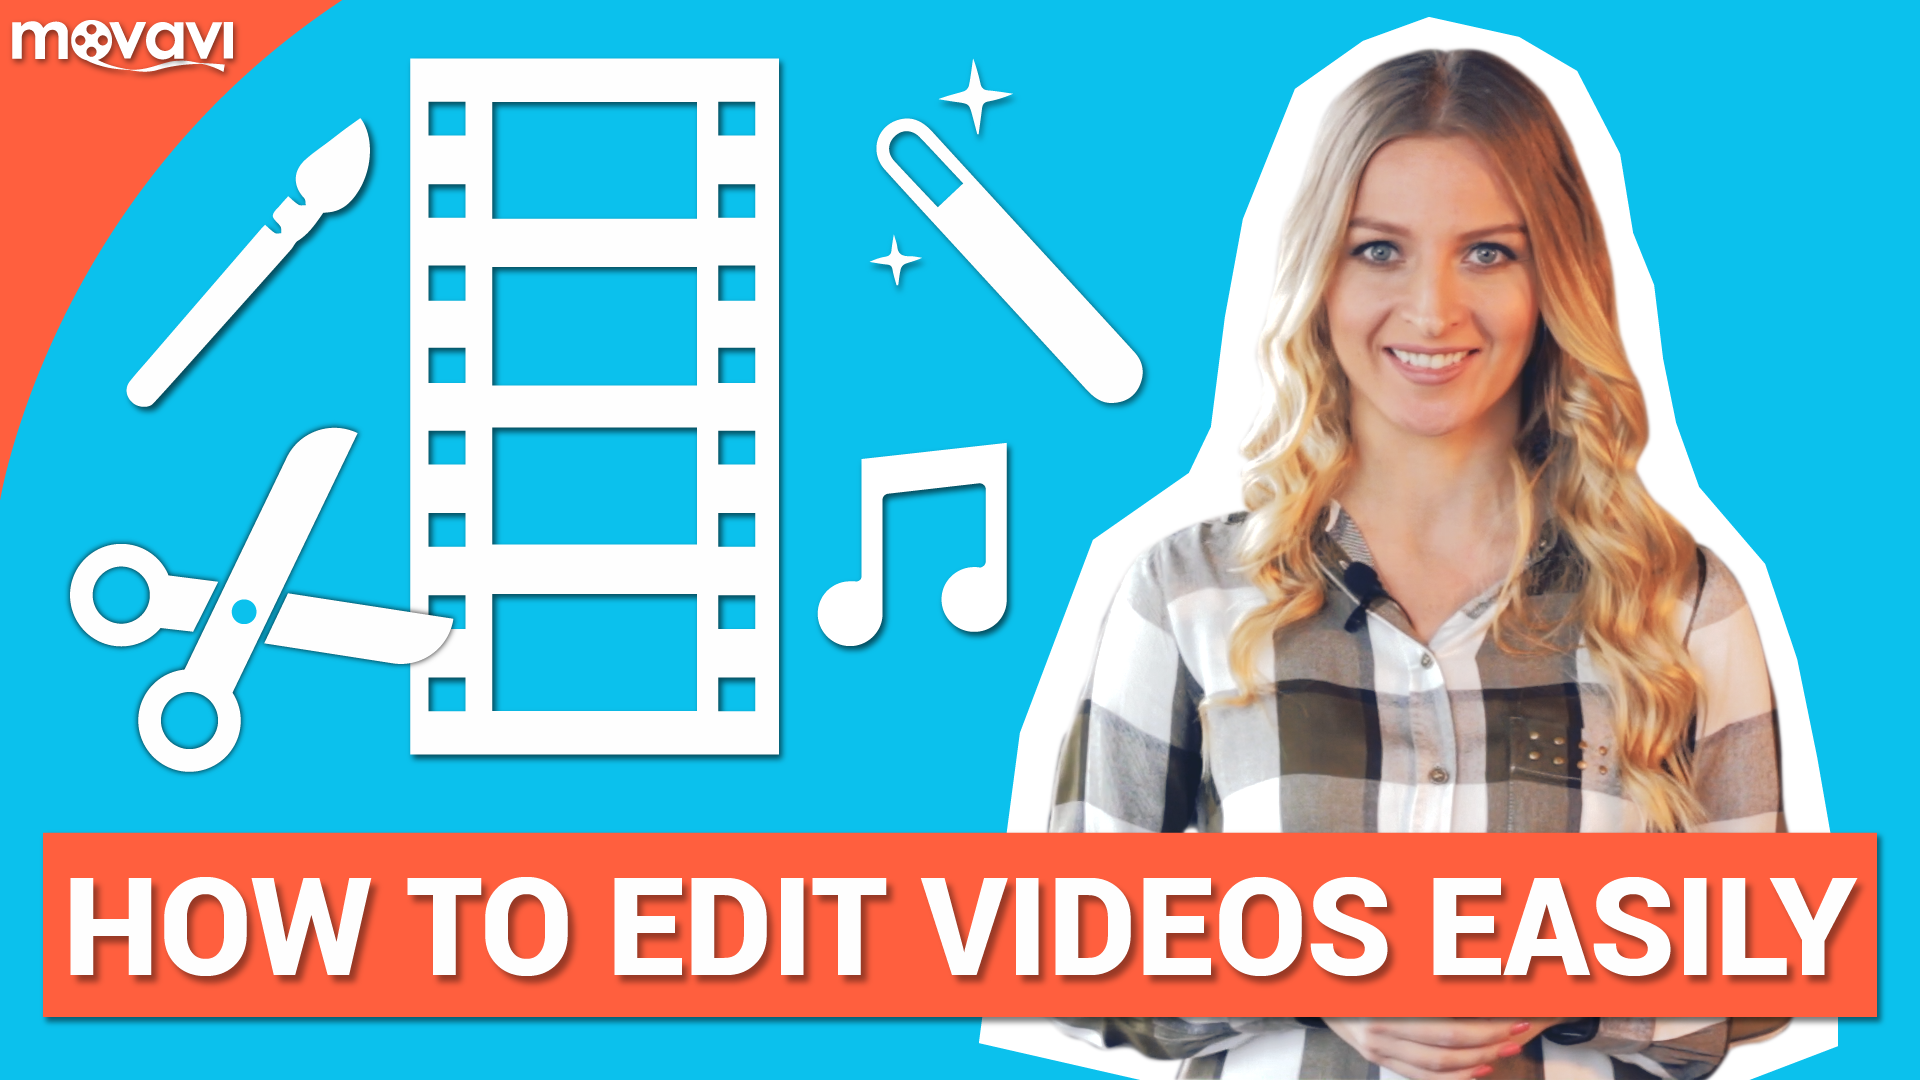 How to edit videos easily